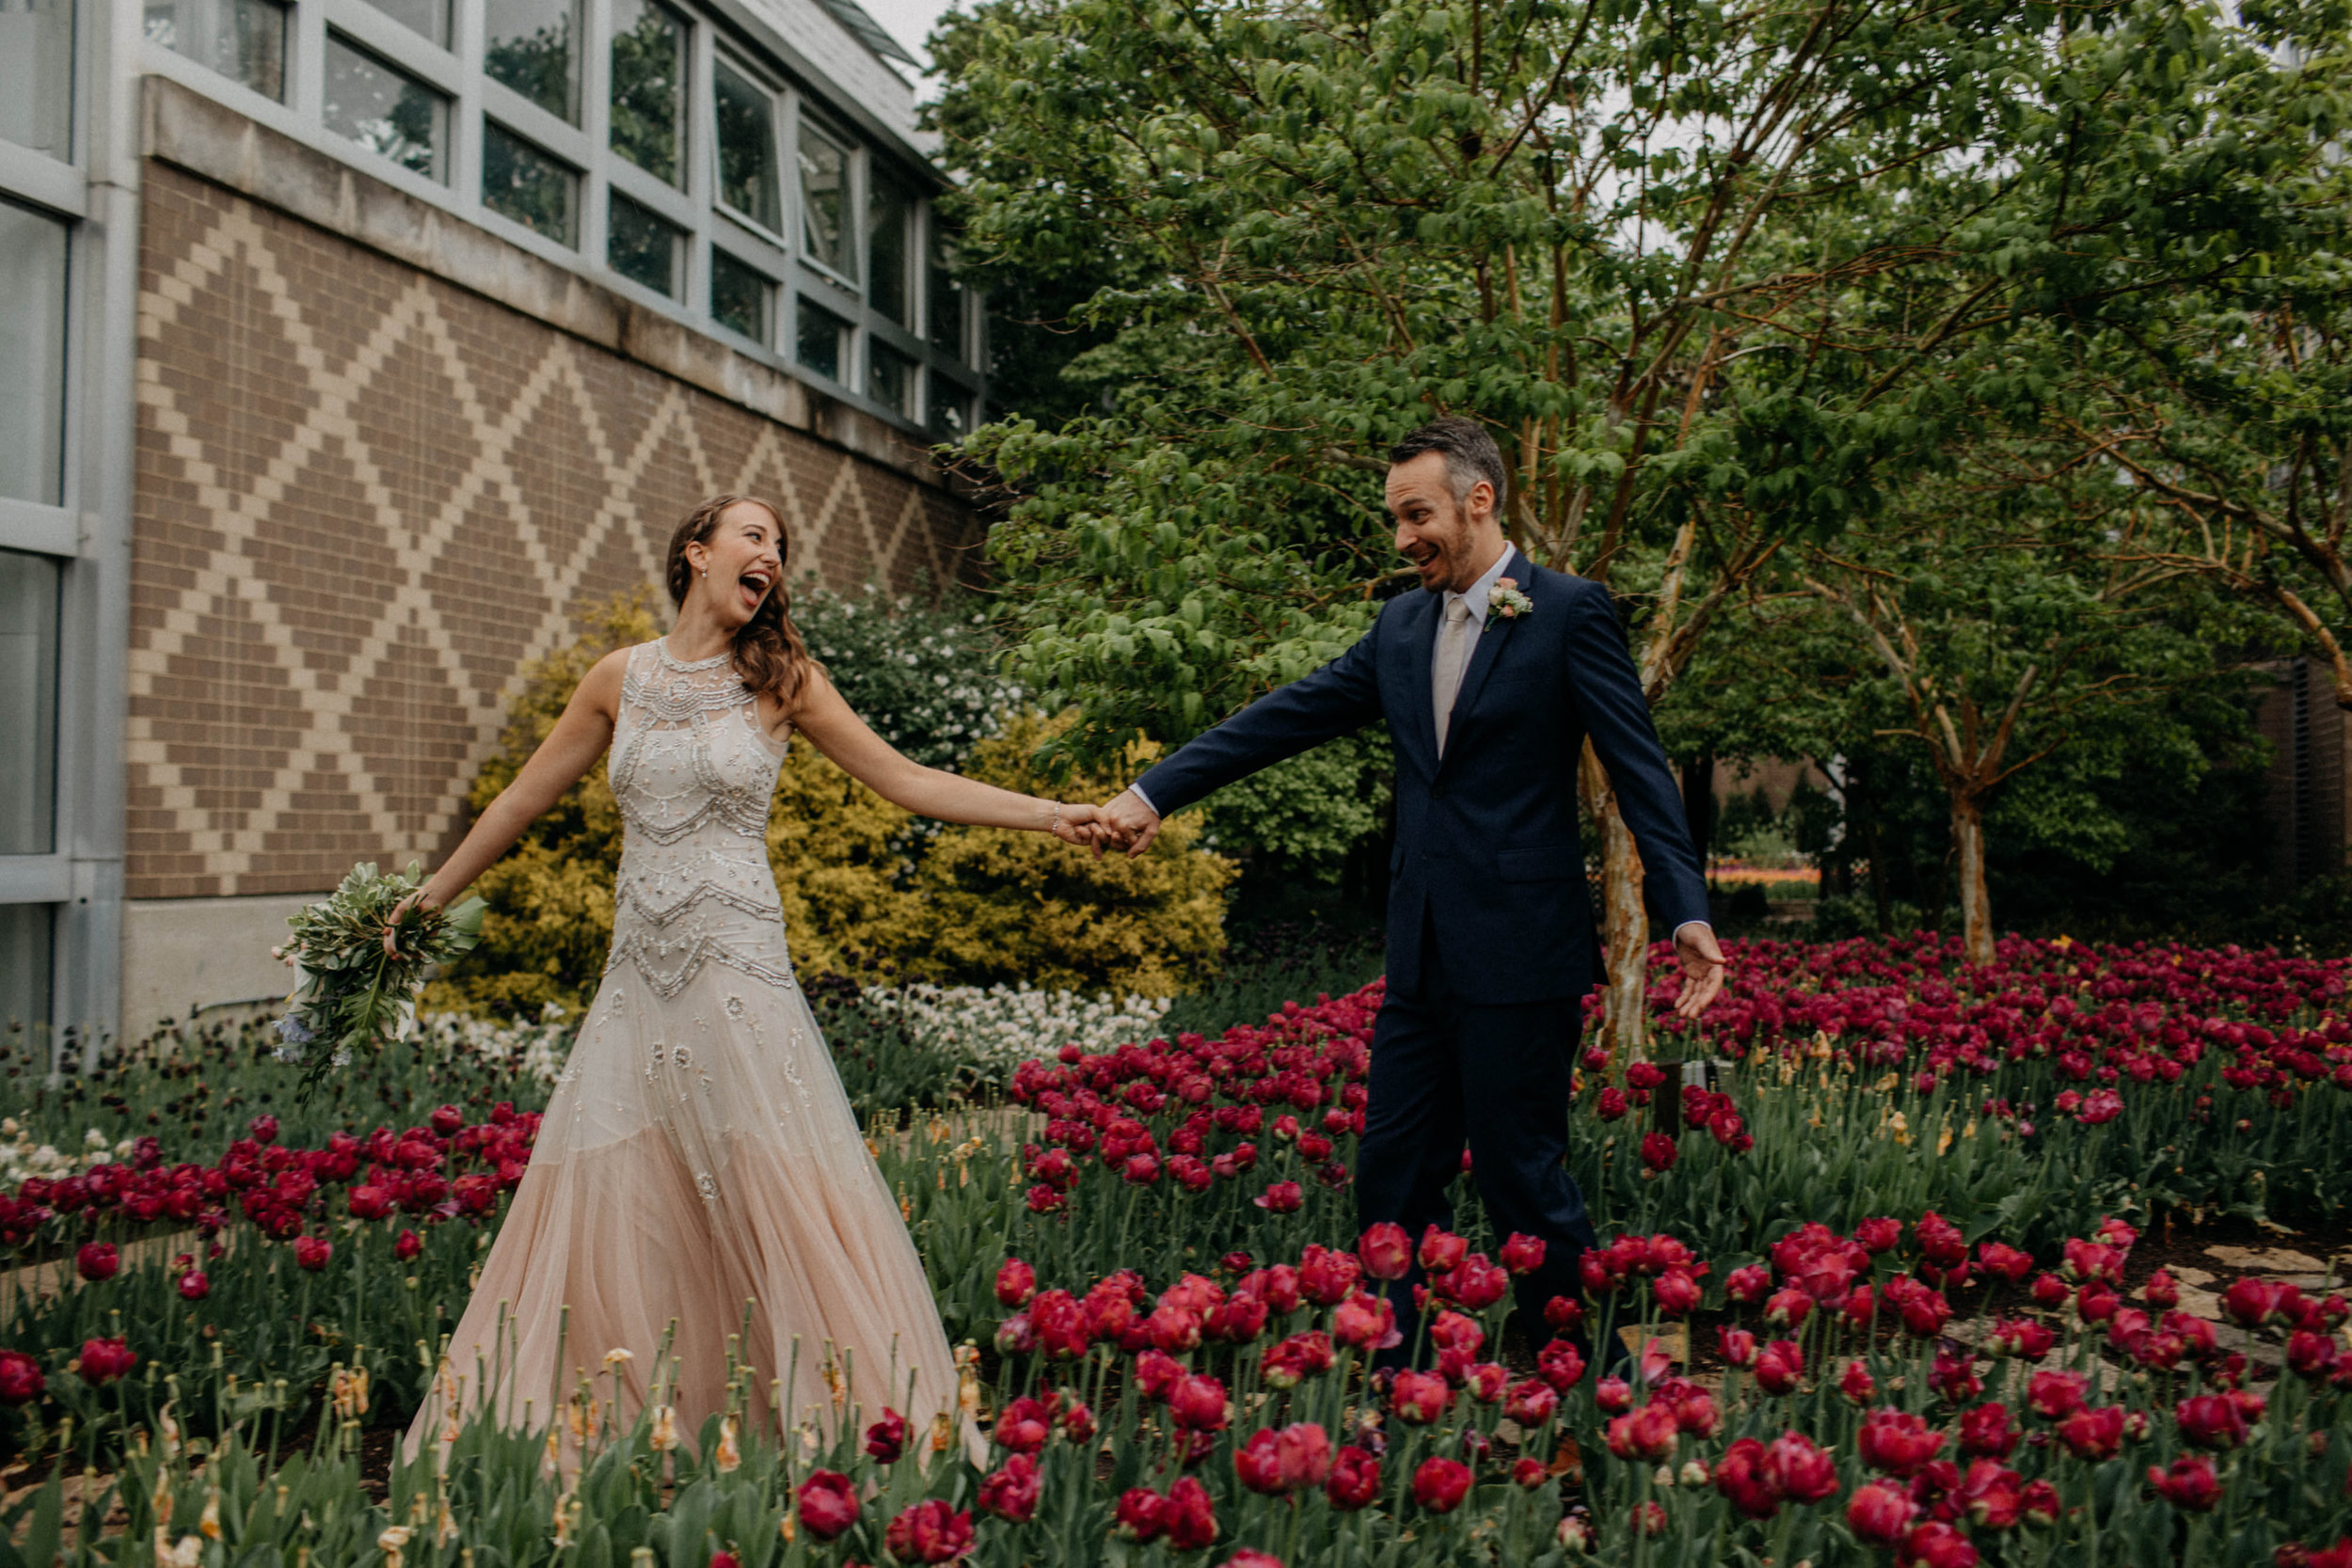 franklin park conservatory wedding columbus ohio wedding photographer grace e jones photography134.jpg